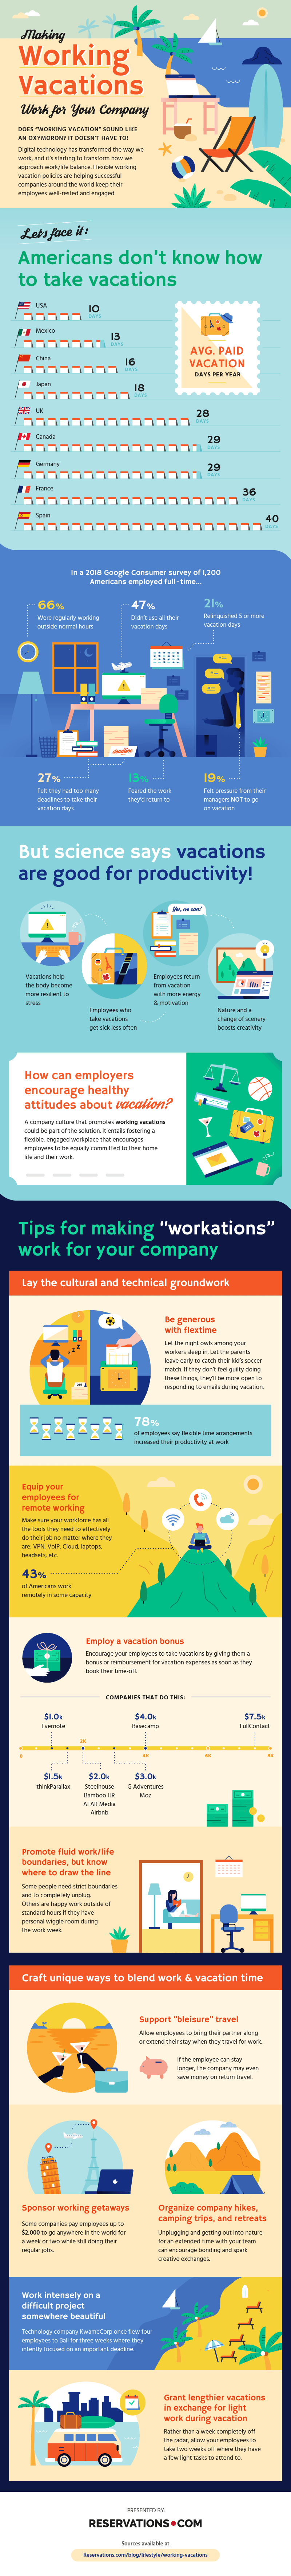 Working Vacations 2019 Infographic